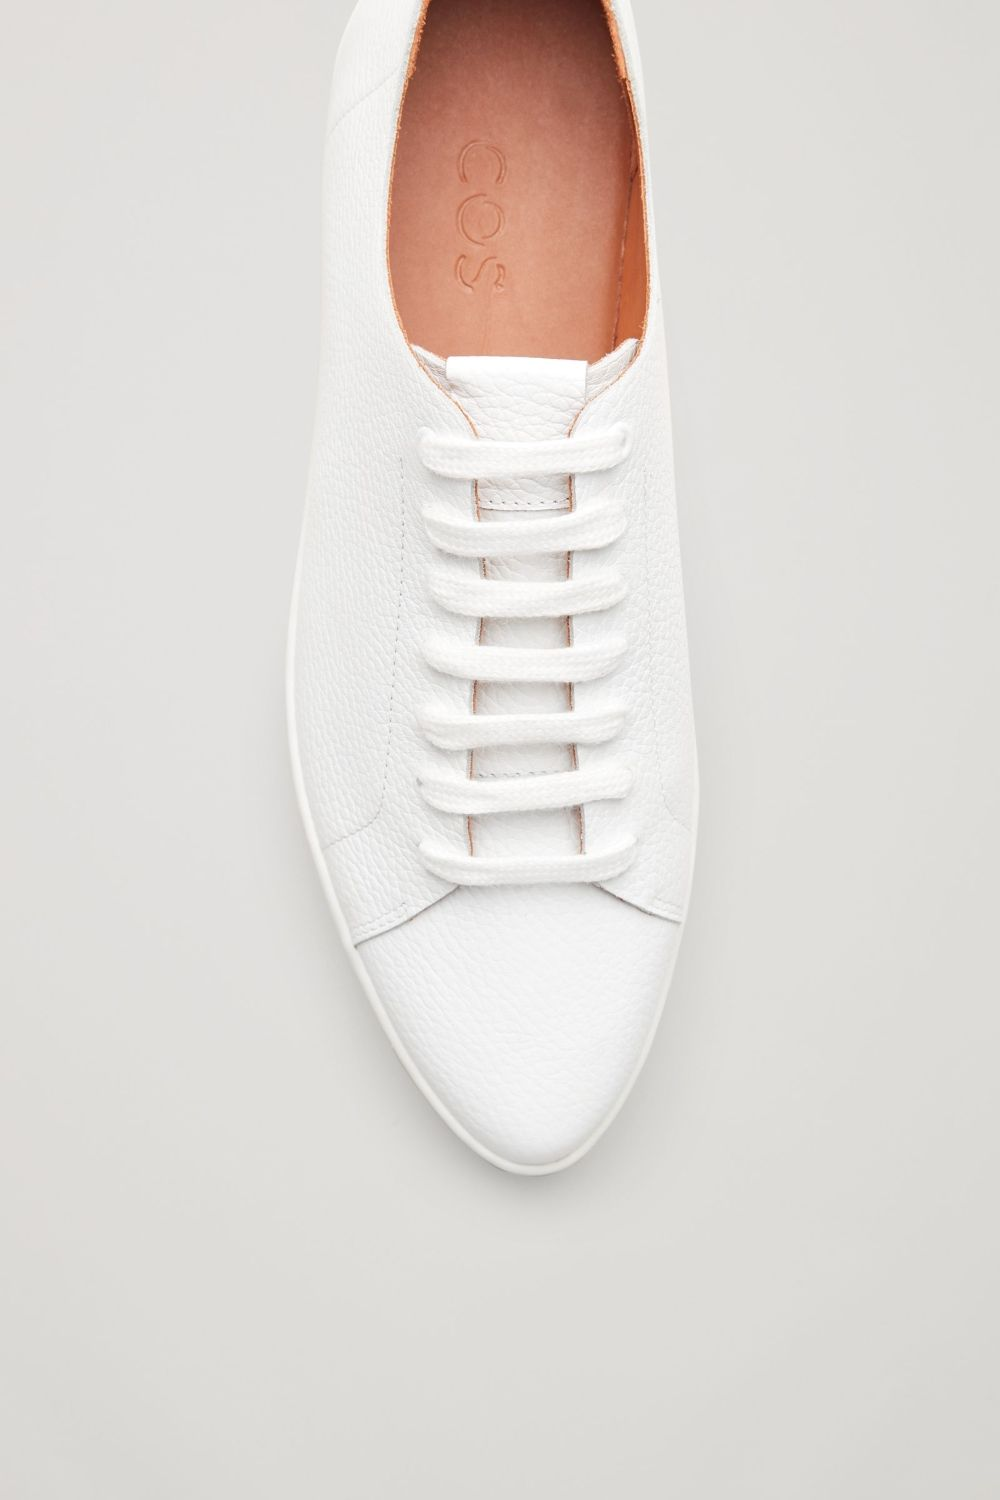 5f5ae364708 COS image 3 of Pointed sneaker in White White Sneakers